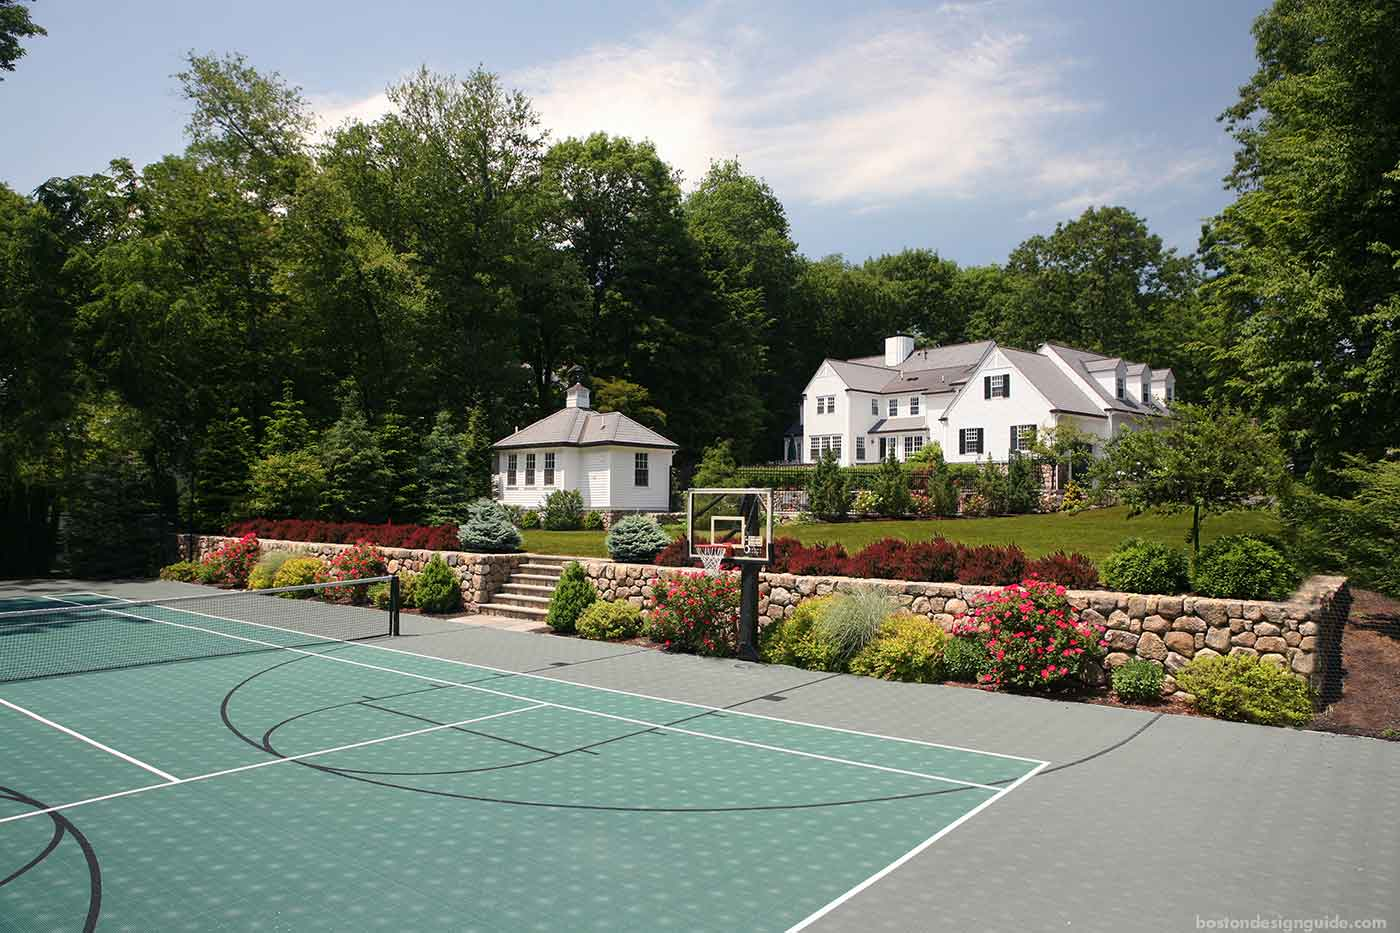 Tennis court design by The MacDowell Company